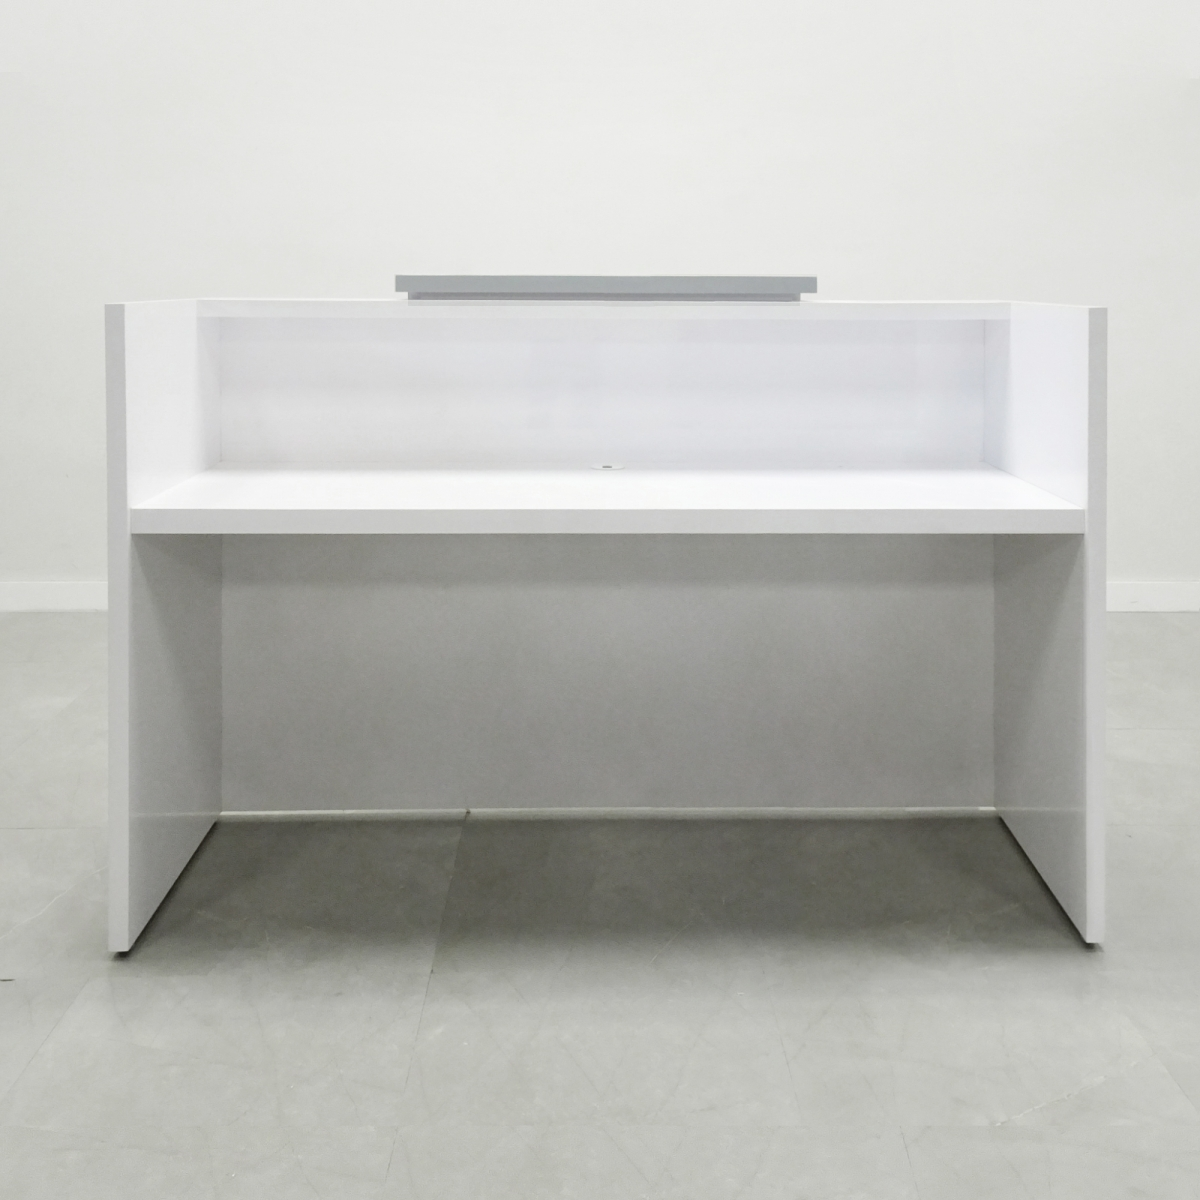 60 In. Chicago Reception Desk Grey fog and White Matte Laminate